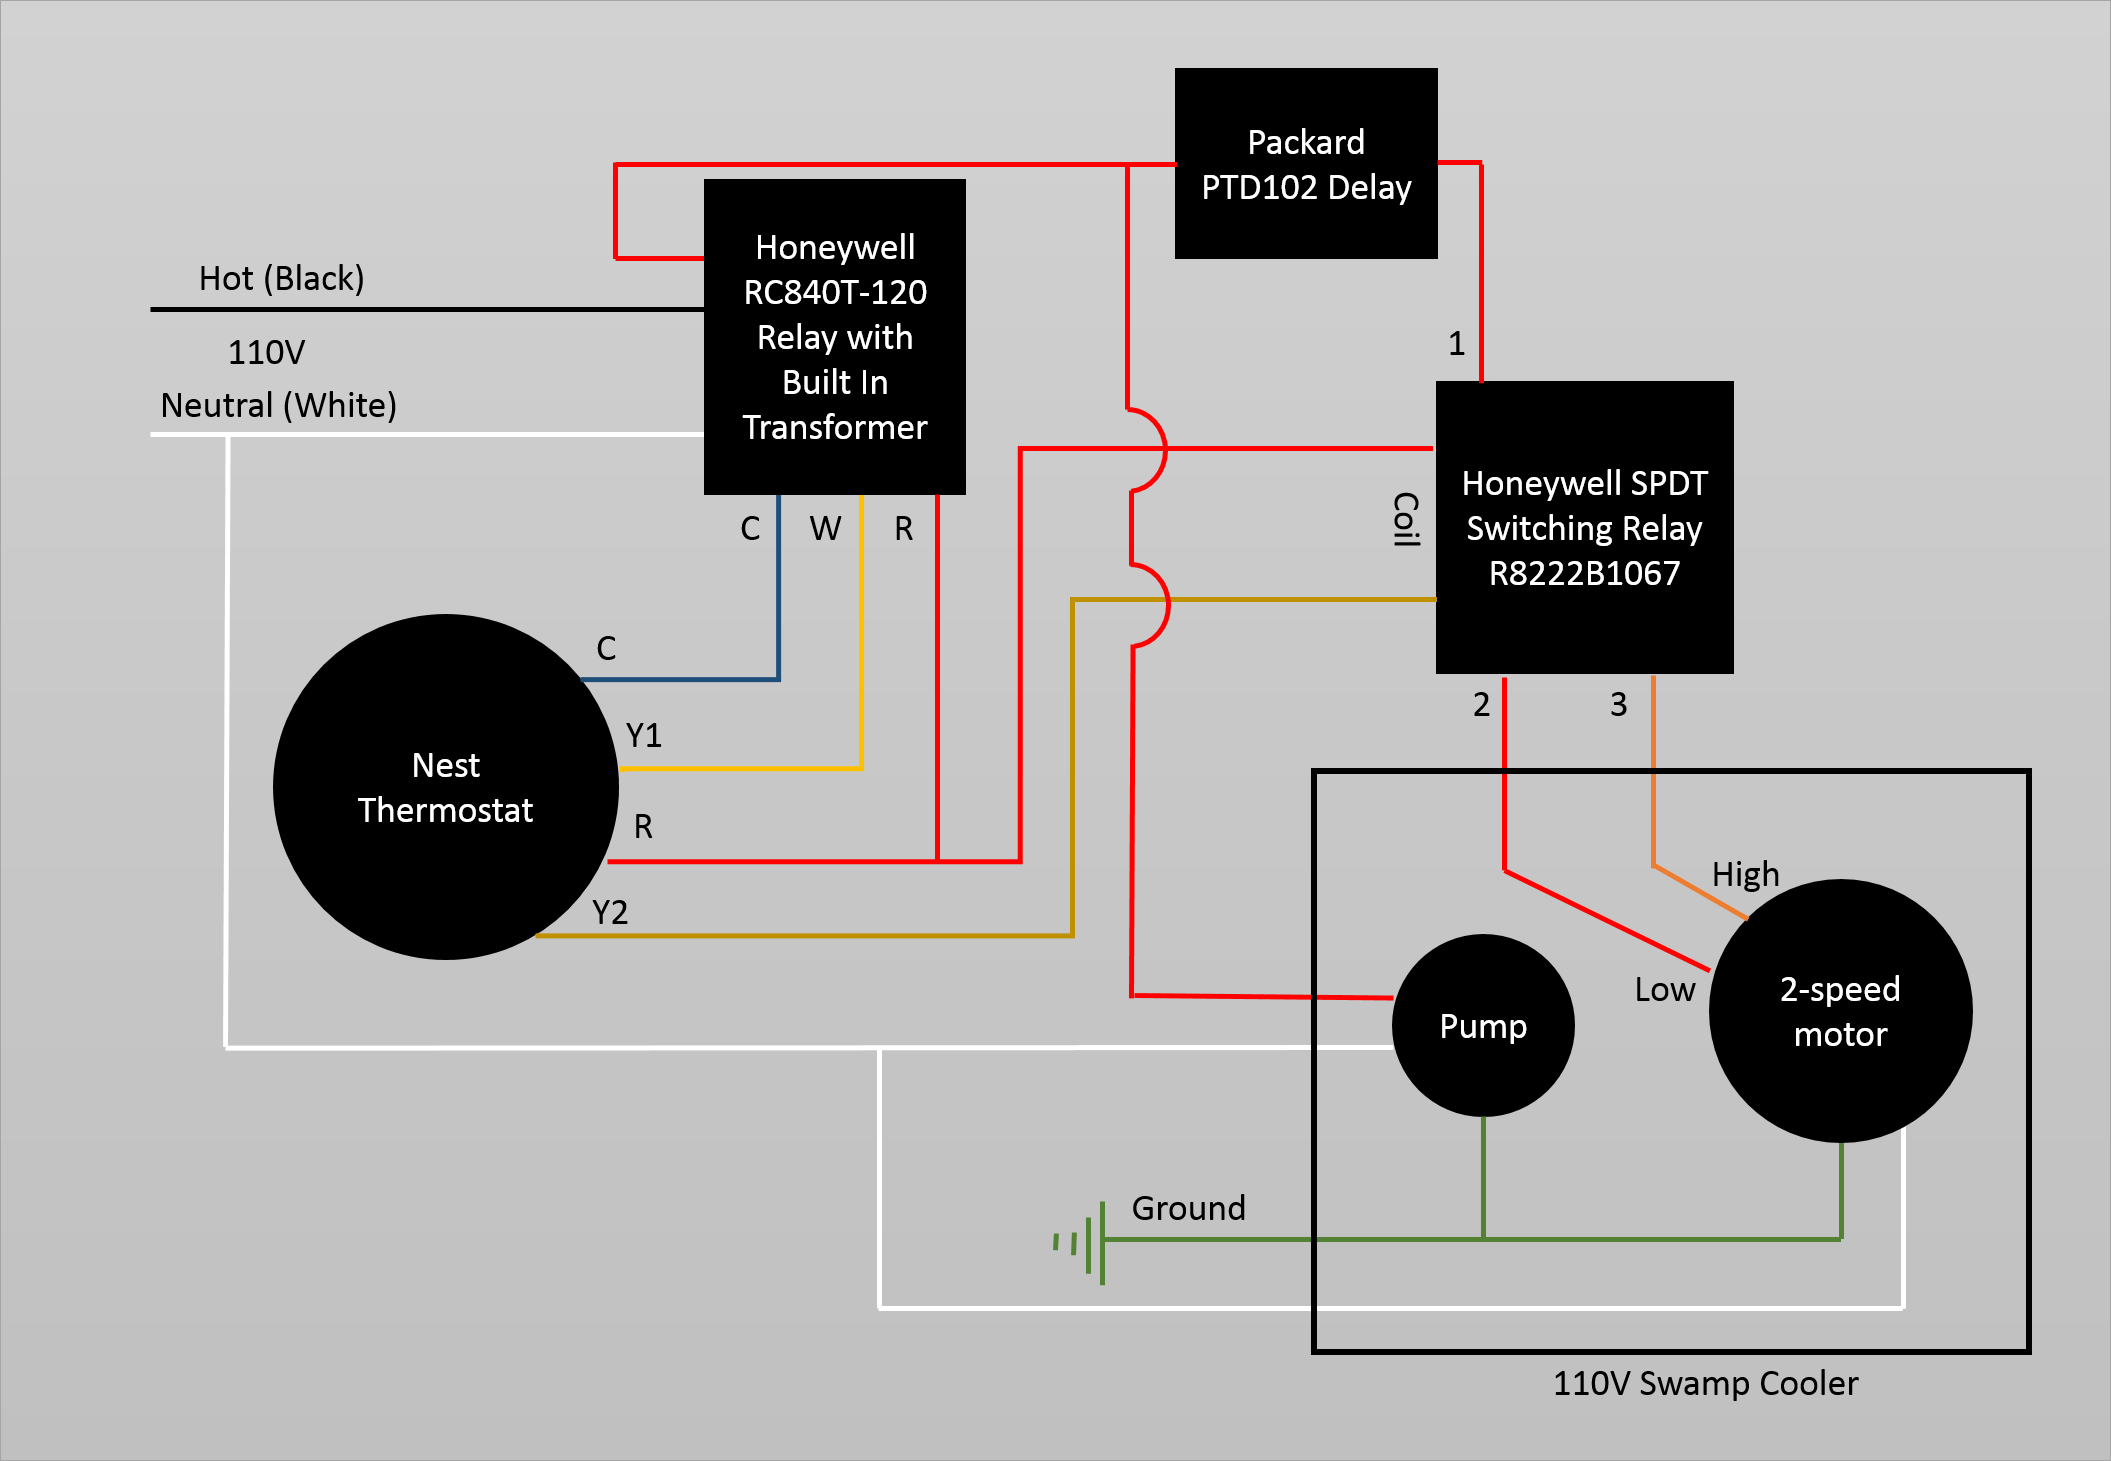 Wiring - Controlling 110V Swamp Cooler Using Nest Thermostat - Home - Nest Wiring Diagram 4 Wire